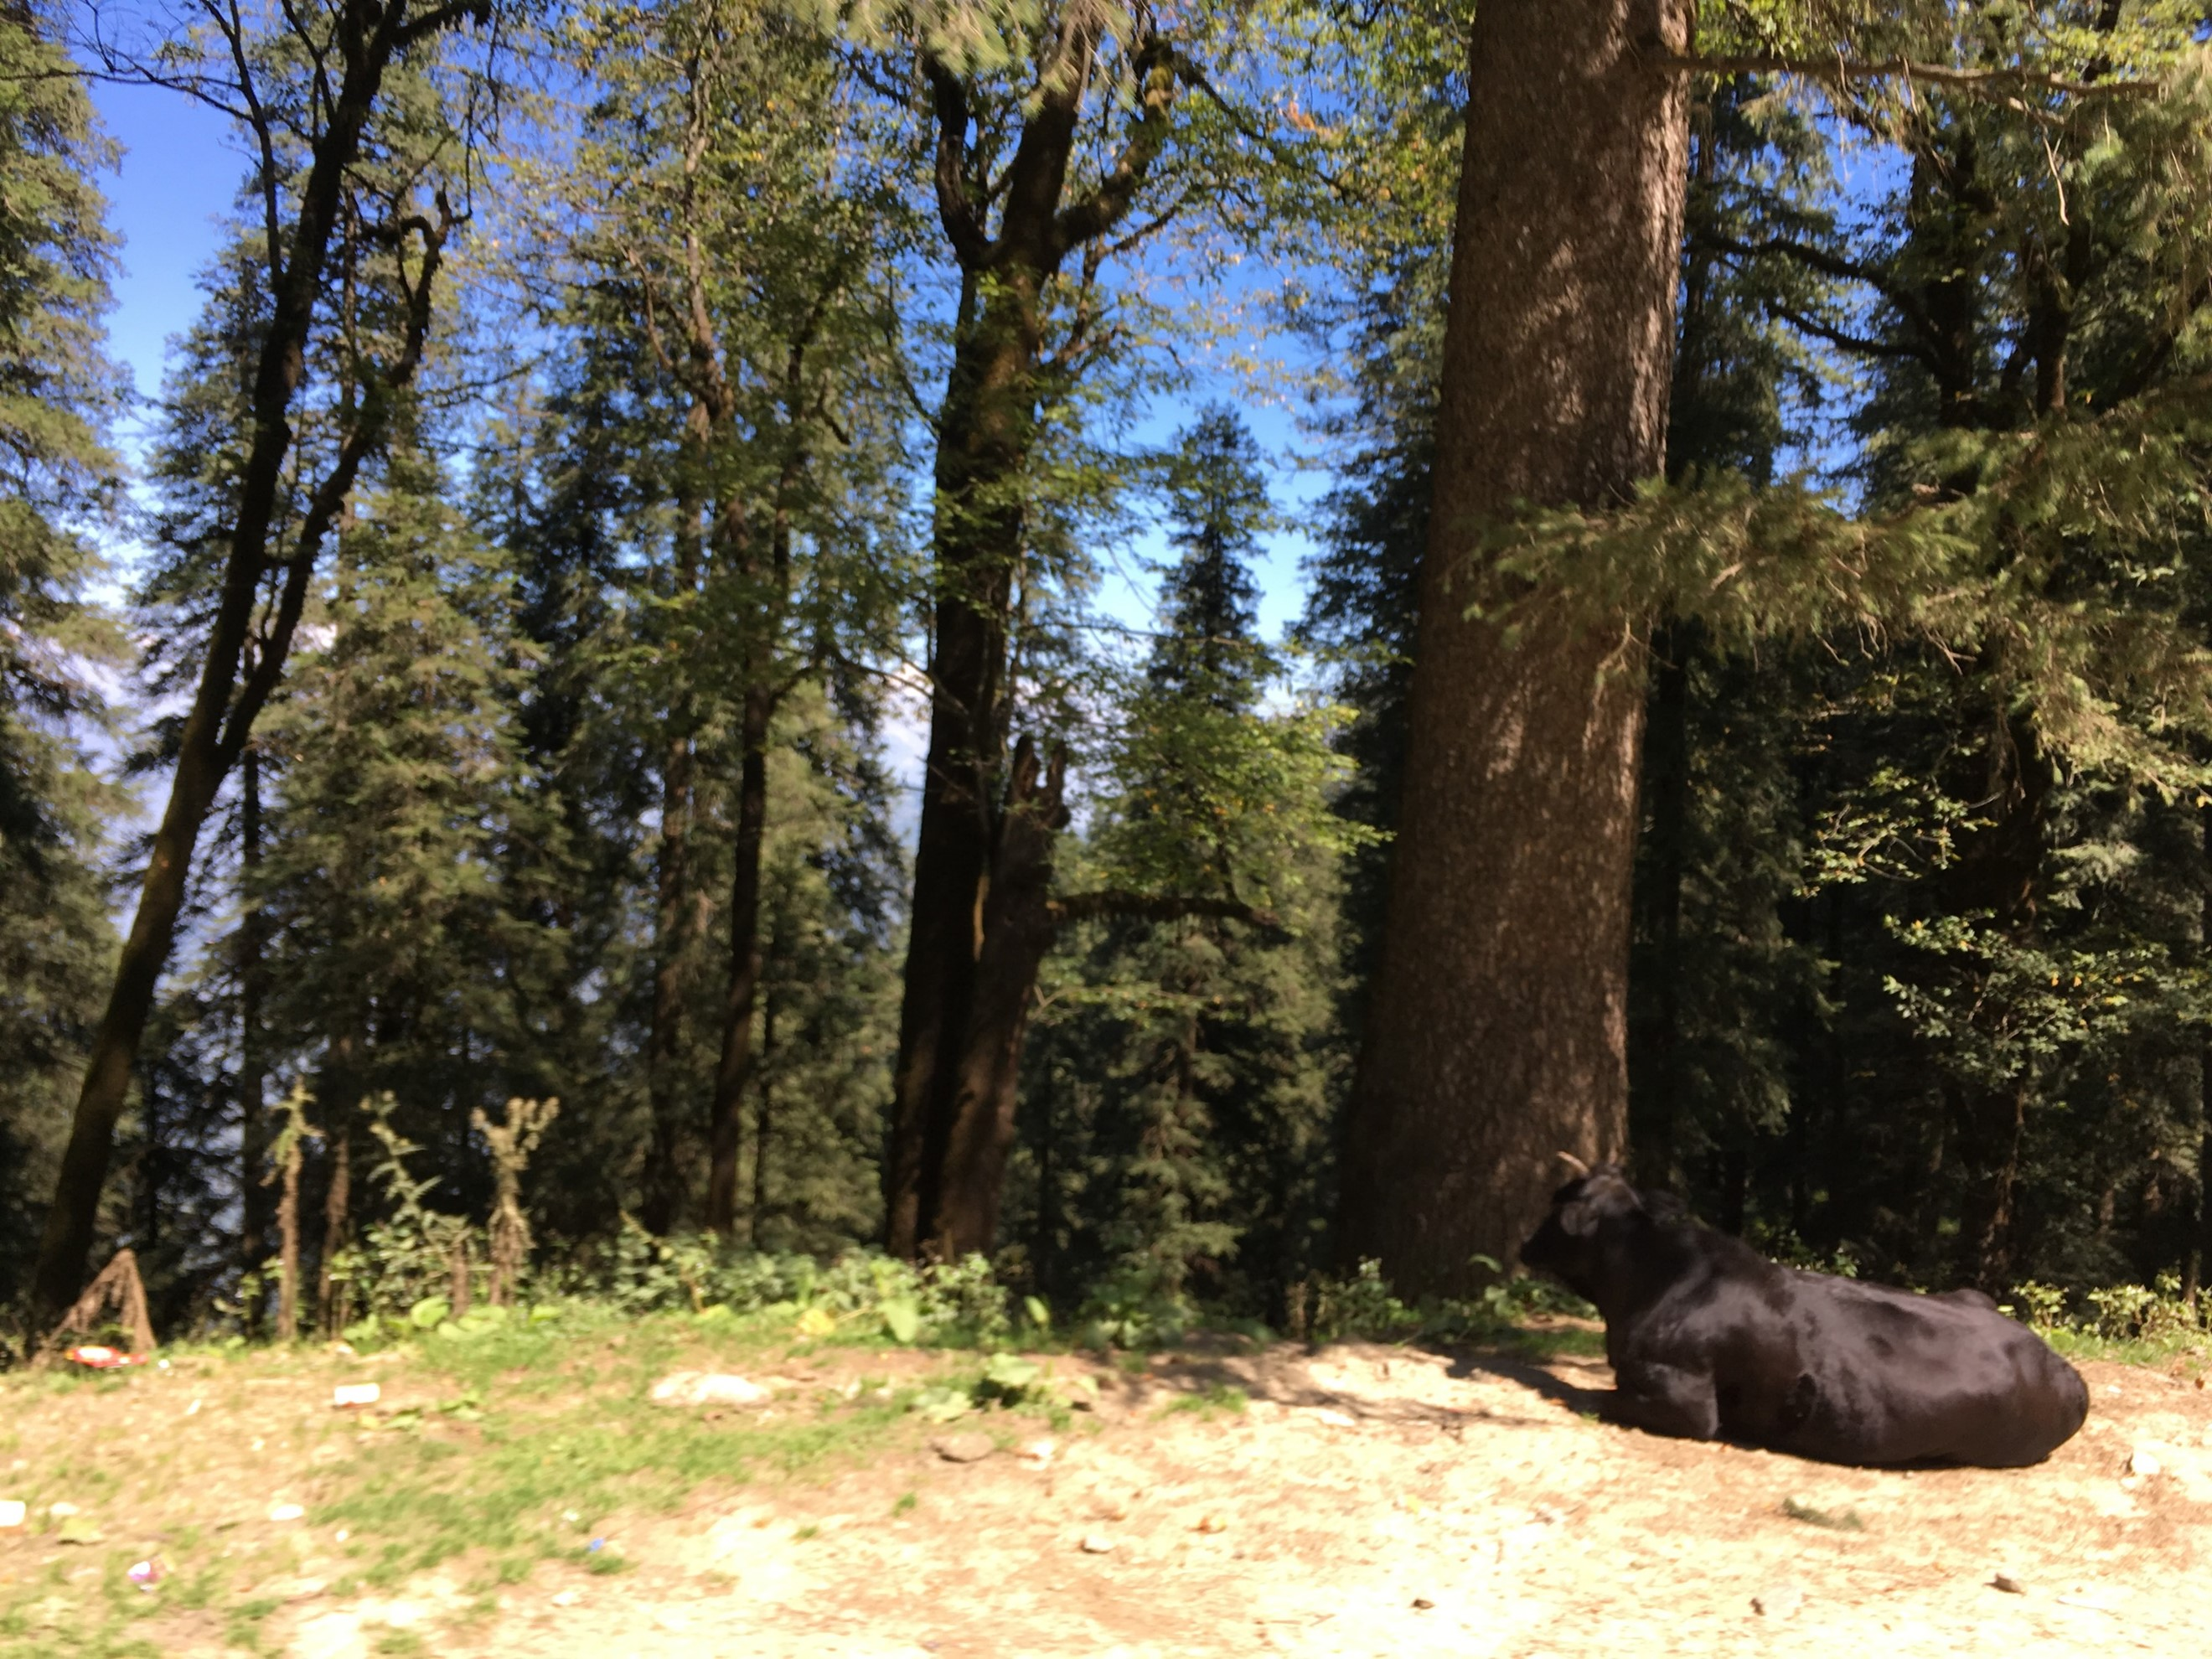 A tree in a forest on Hatu peak with perhaps a buffalo